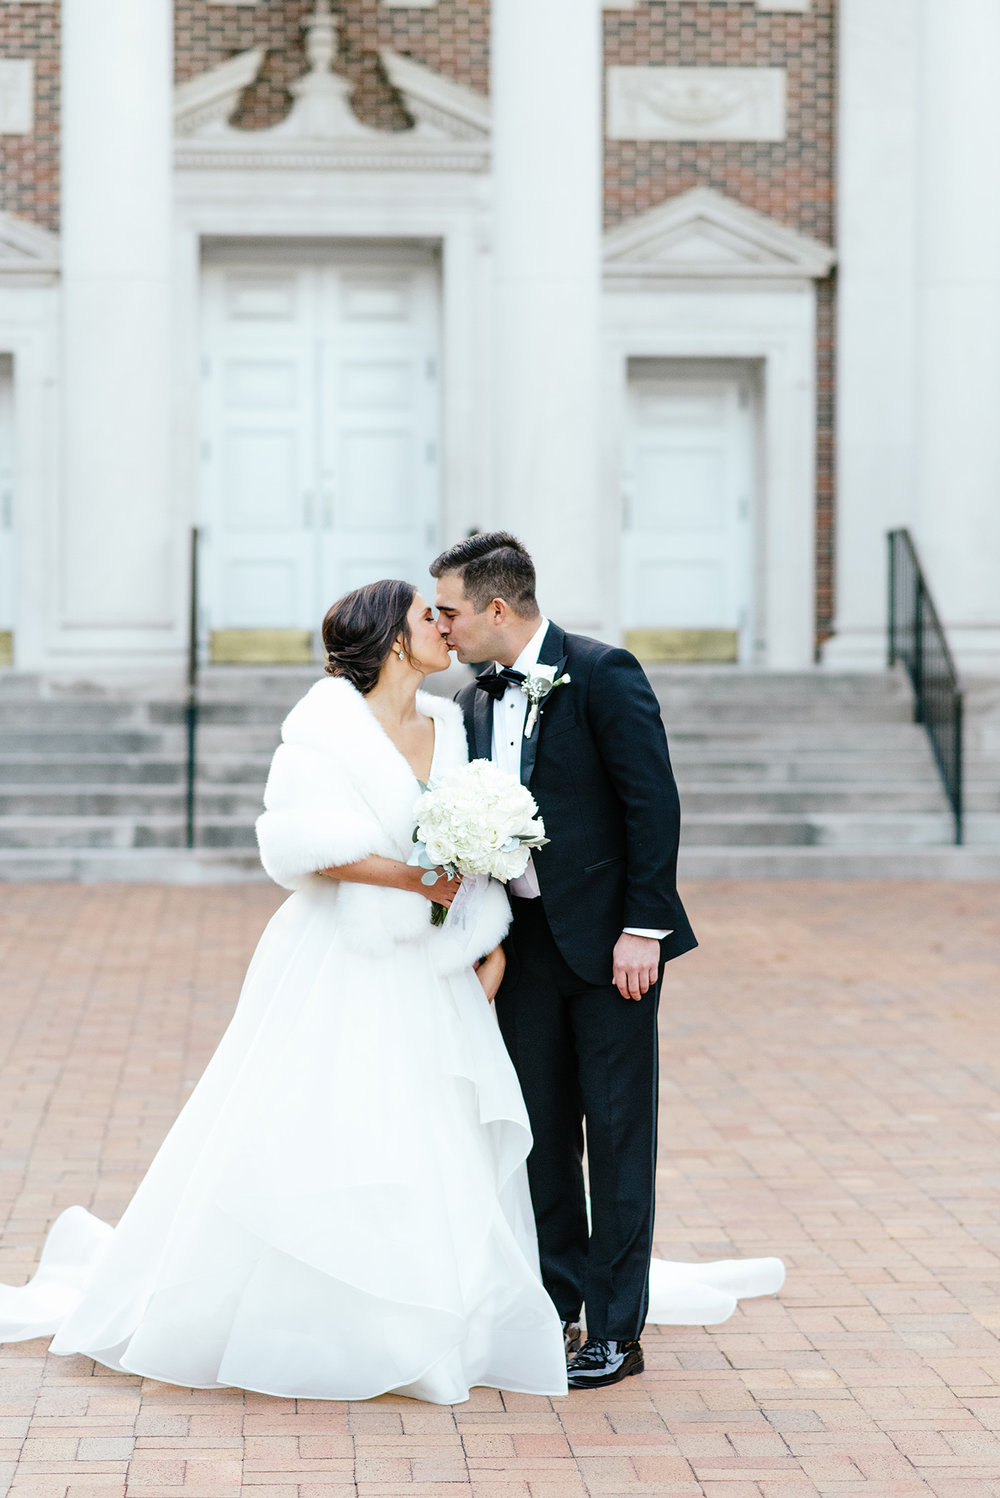 MattAndJulieWeddings-PerkensChapelWedding-RoomonMain-Alyssa+Chris300.jpg